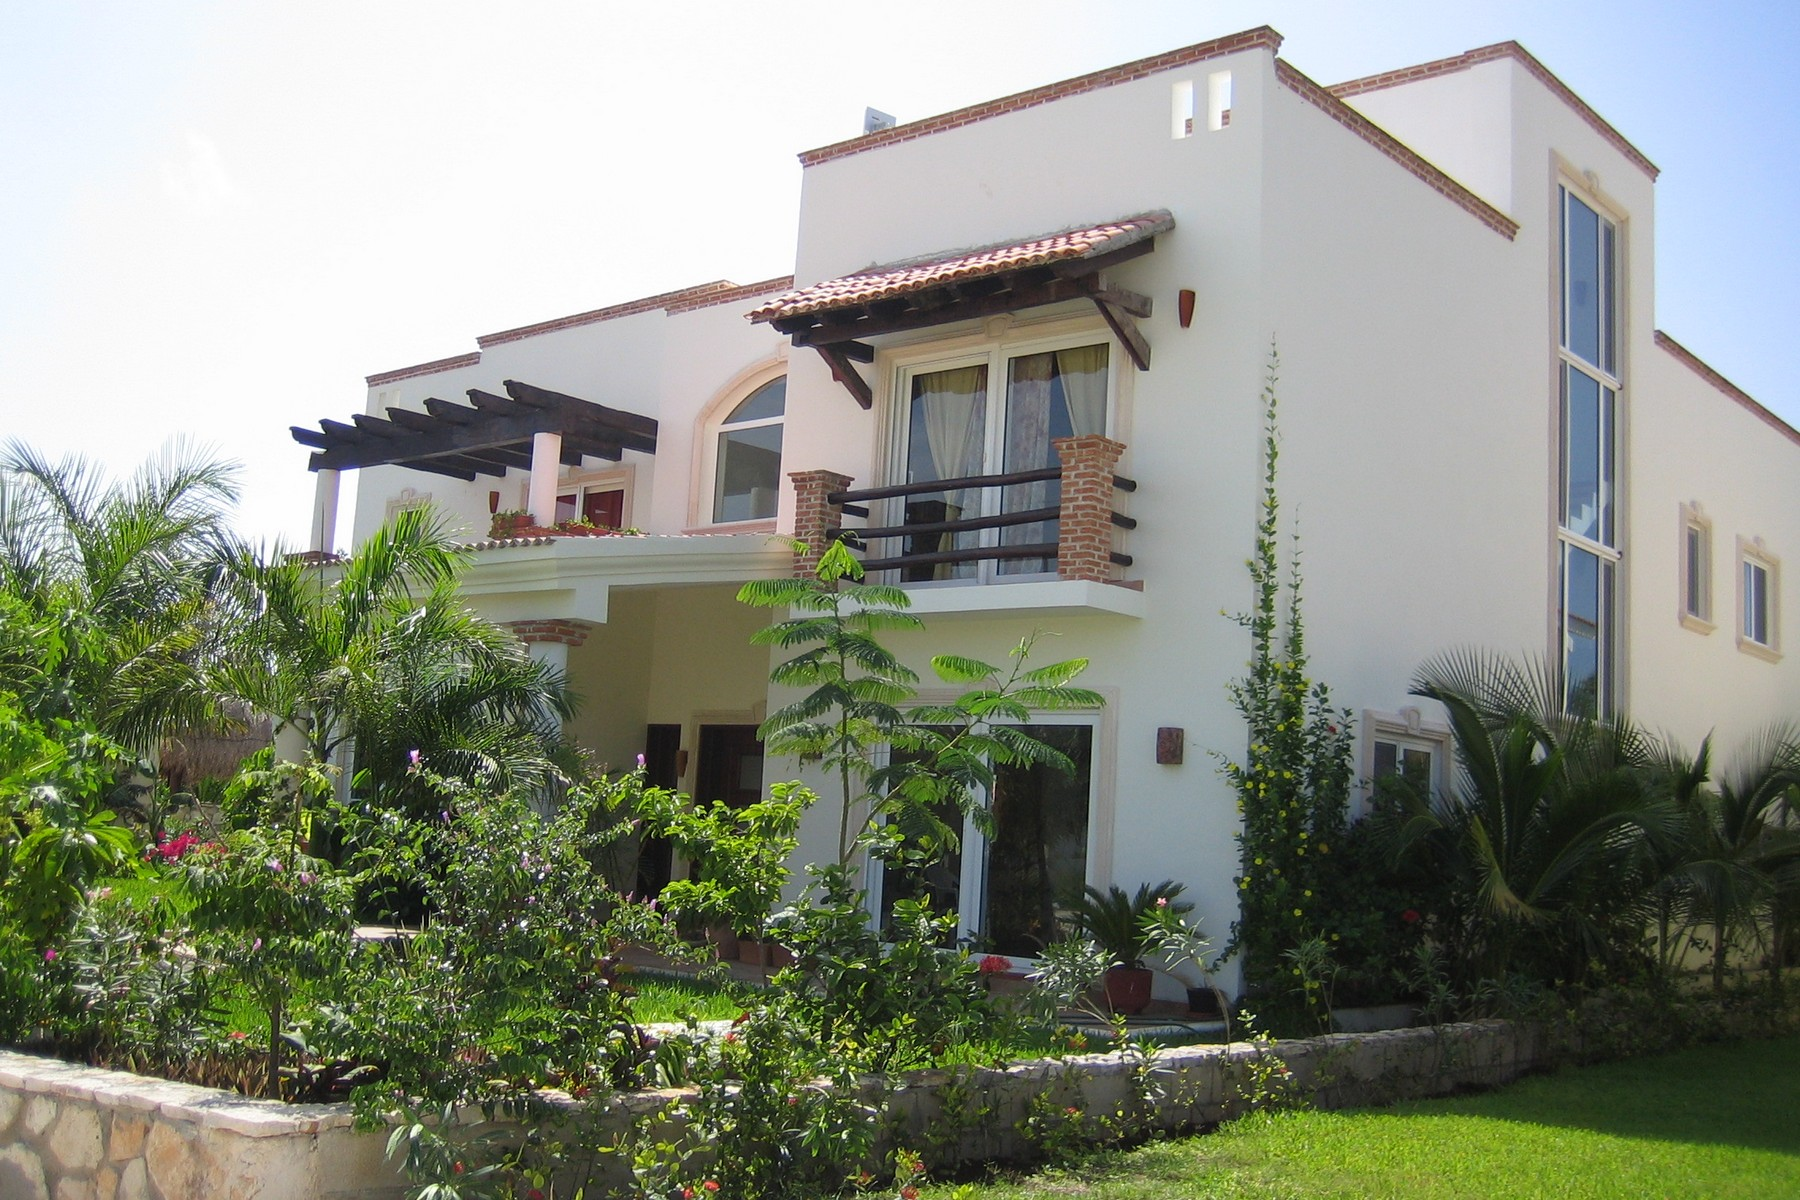 Single Family Home for Sale at CASA ANDALUCIA Playa Del Carmen, Quintana Roo, 77710 Mexico